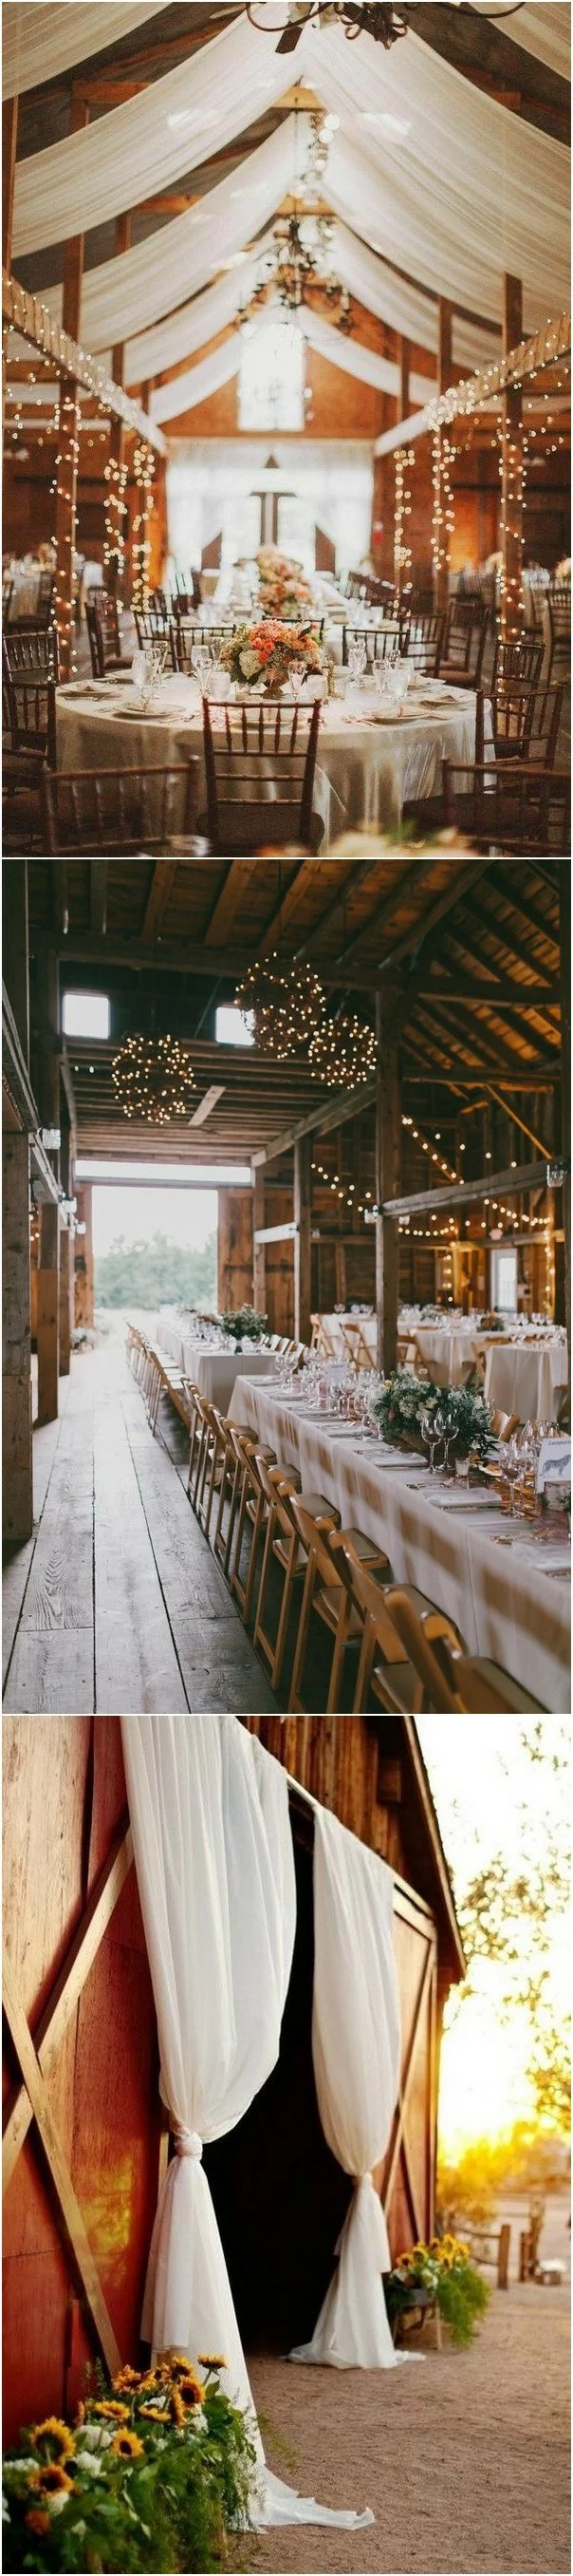 20 Gorgeous Ideas for a Rustic Barn Wedding  EmmaLovesWeddings